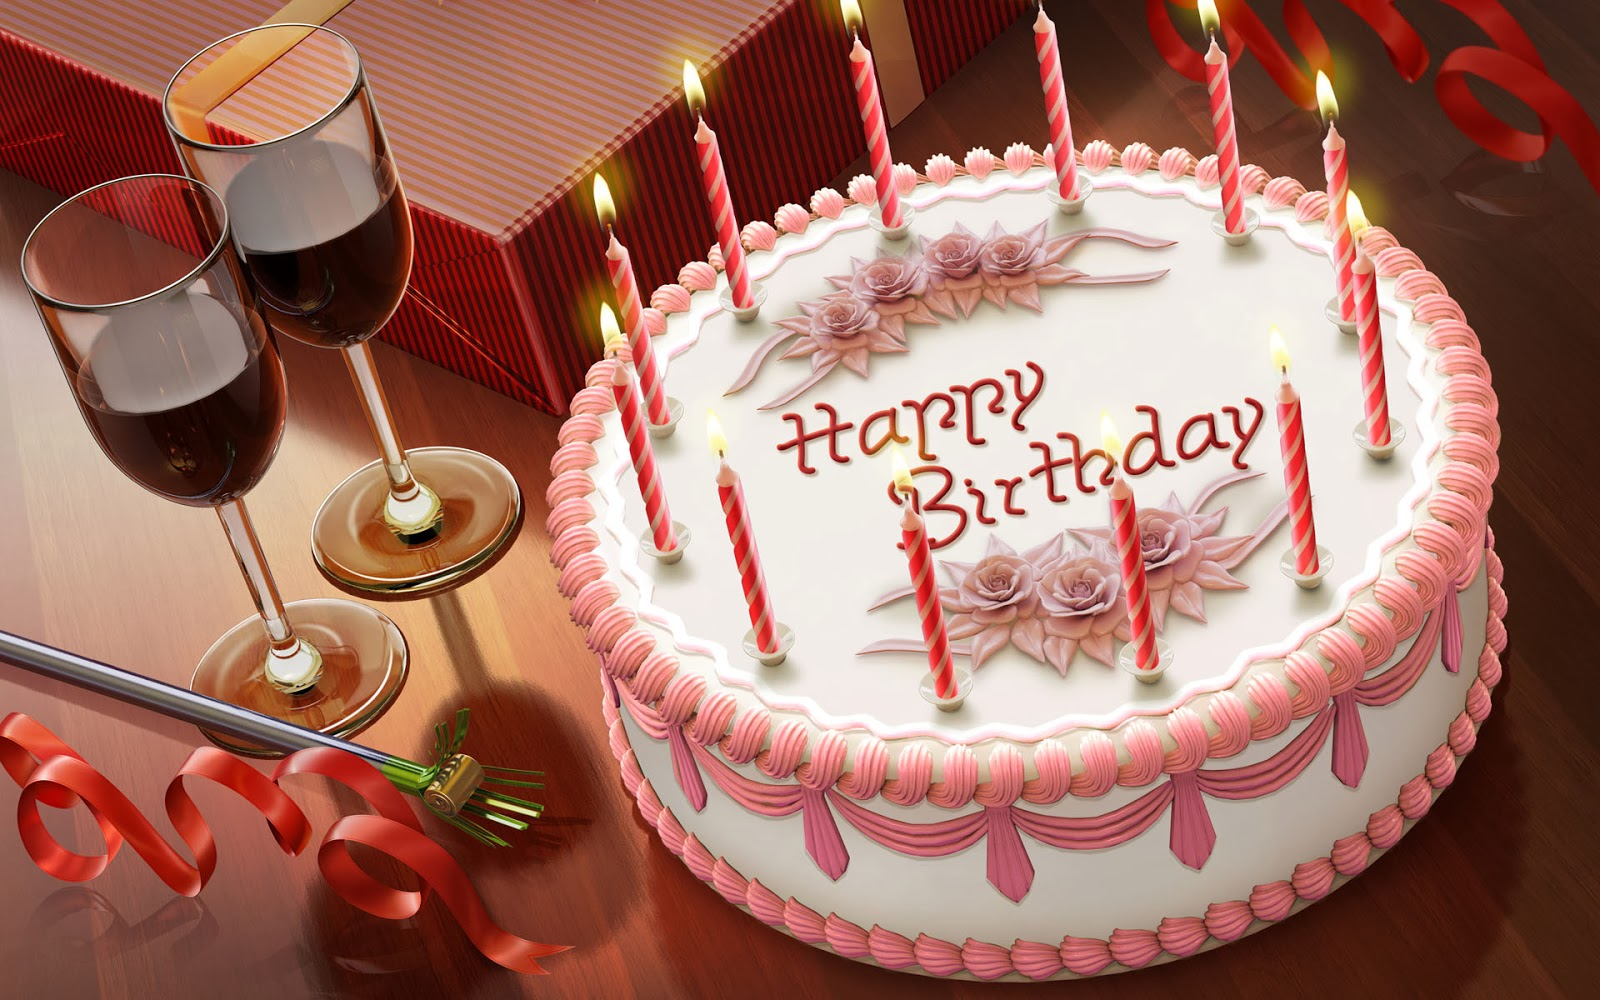 Free Happy Birthday Text Message| Happy Birthday Cake Image| Romantic birthday cake wine Image Download